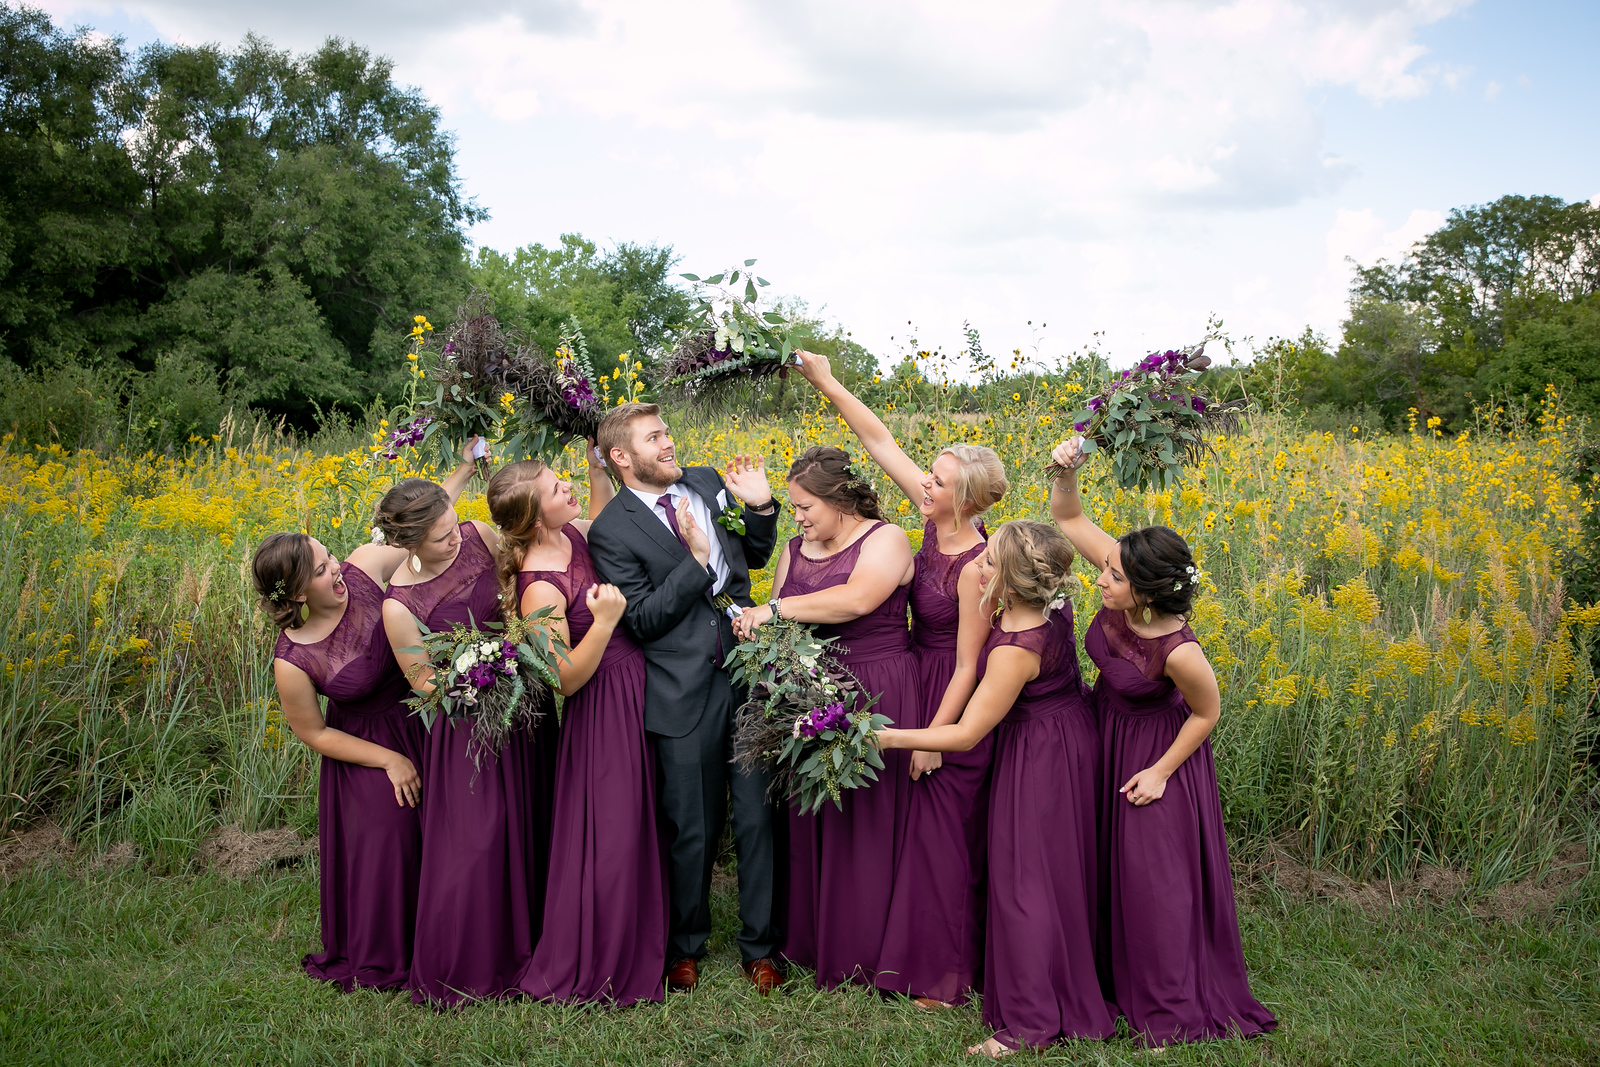 seven bridesmaids jokingly poking the groom with their bouquets